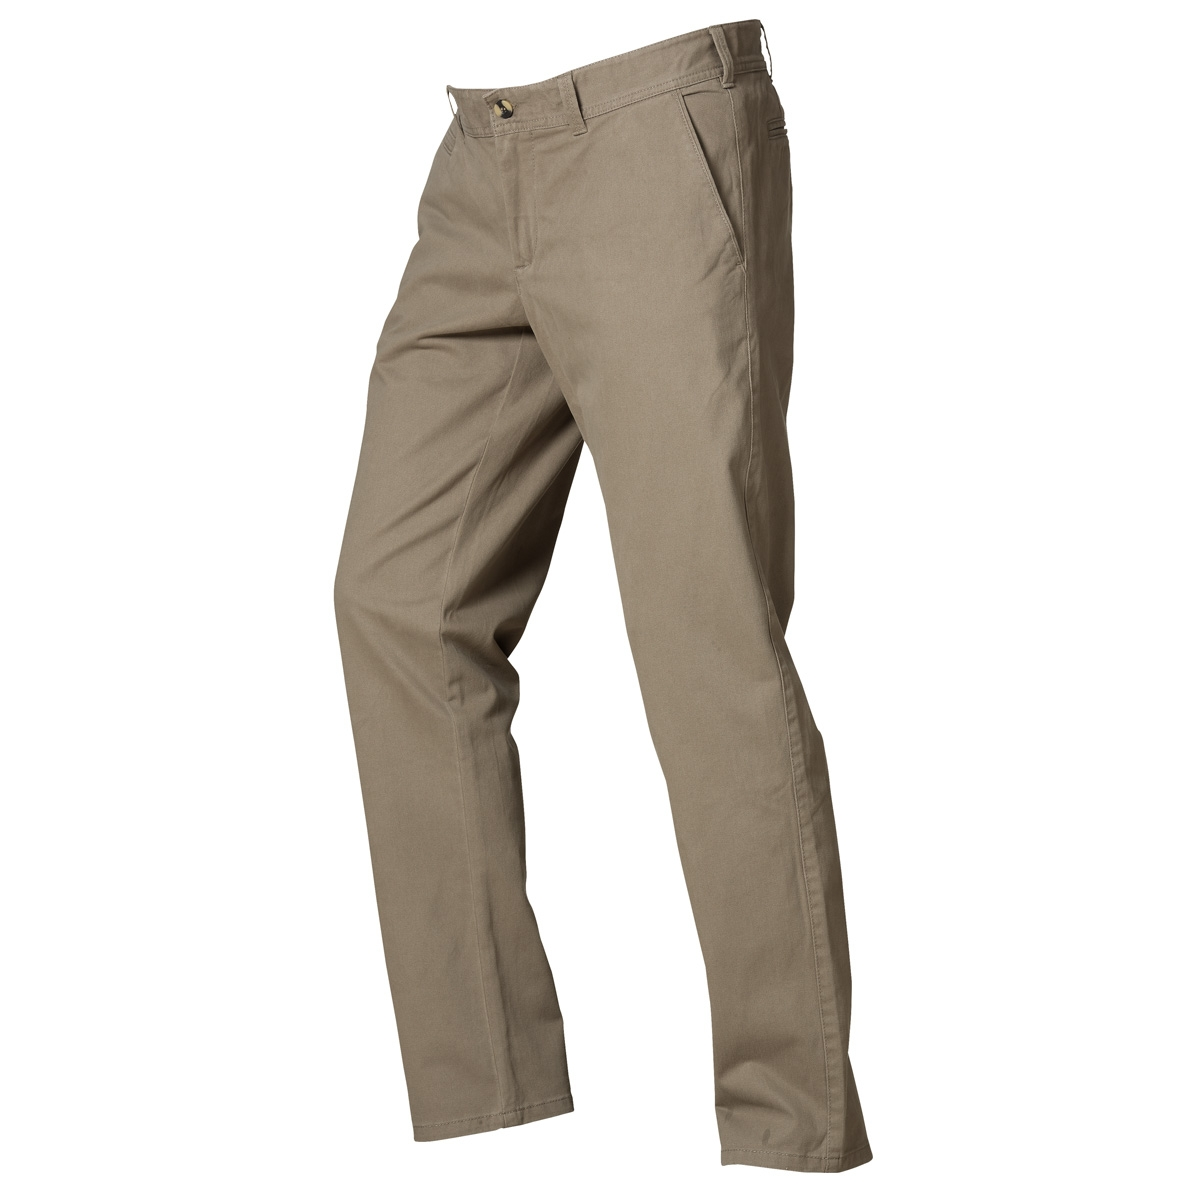 Trousers are usually what men's pants are referred to, while slacks is a term usually used for women's pants. Both terms are most commonly used nowadays if referring to a semi-formal to formal type of pants worn in the office or for special occasions.